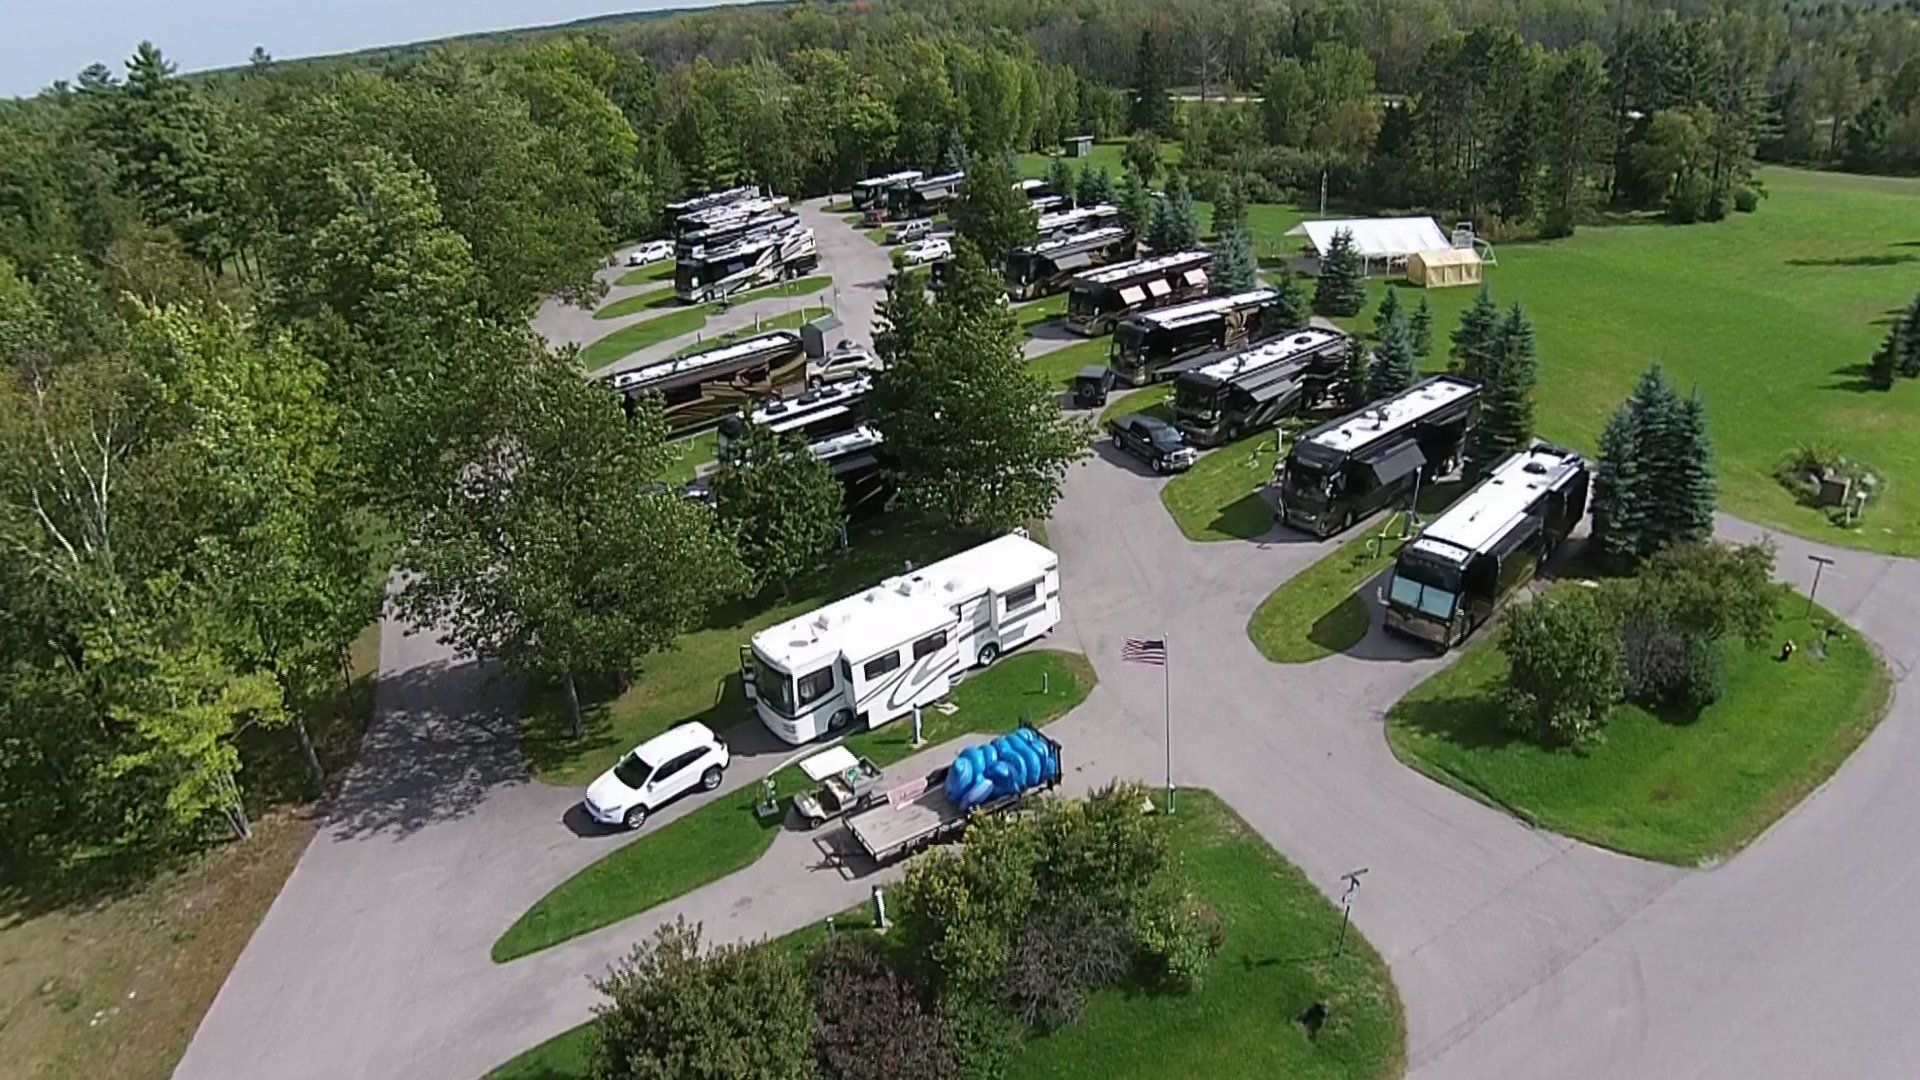 10++ Campgrounds with golf courses near me viral